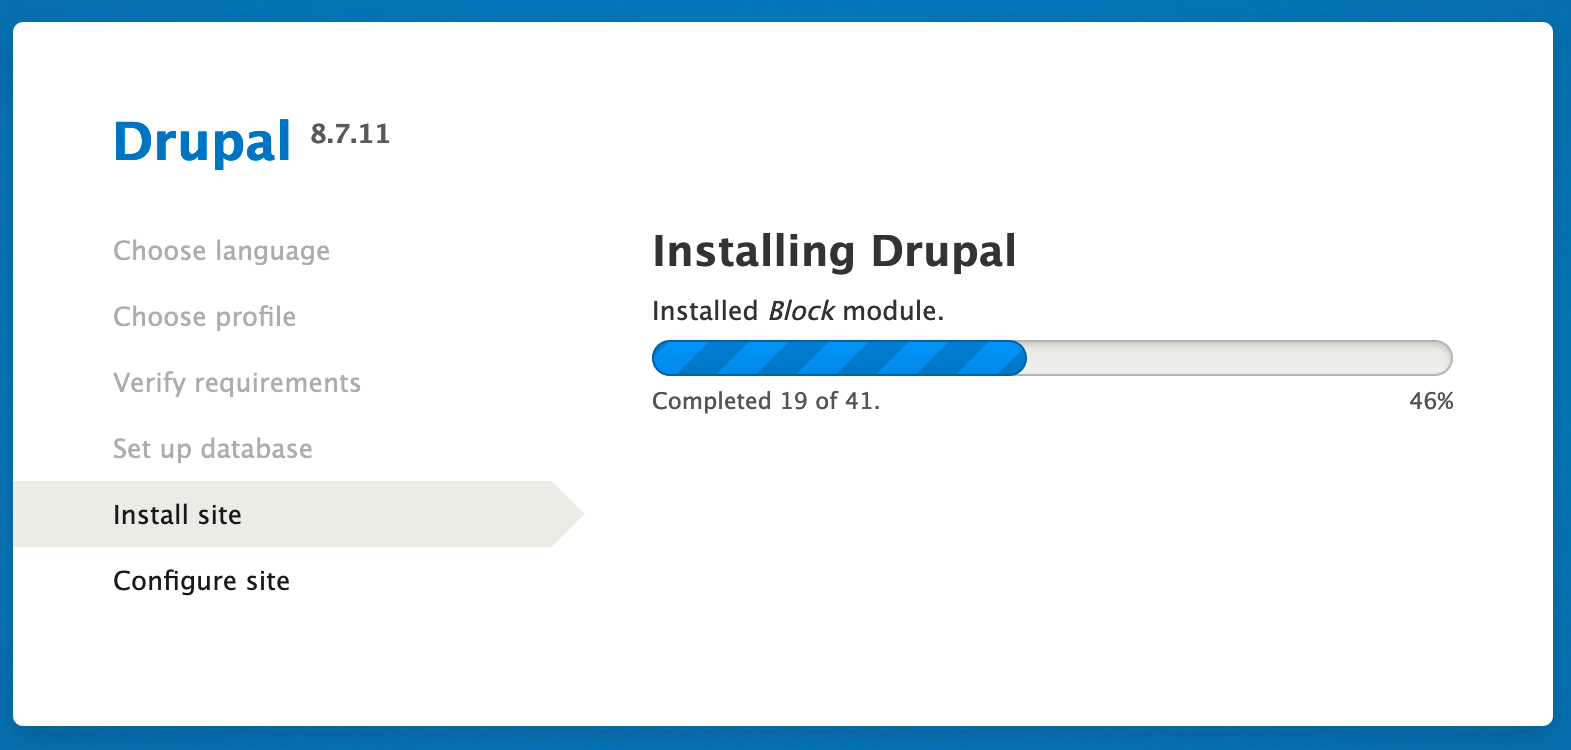 Once the Save and continue option is selected, Drupal begins installation.